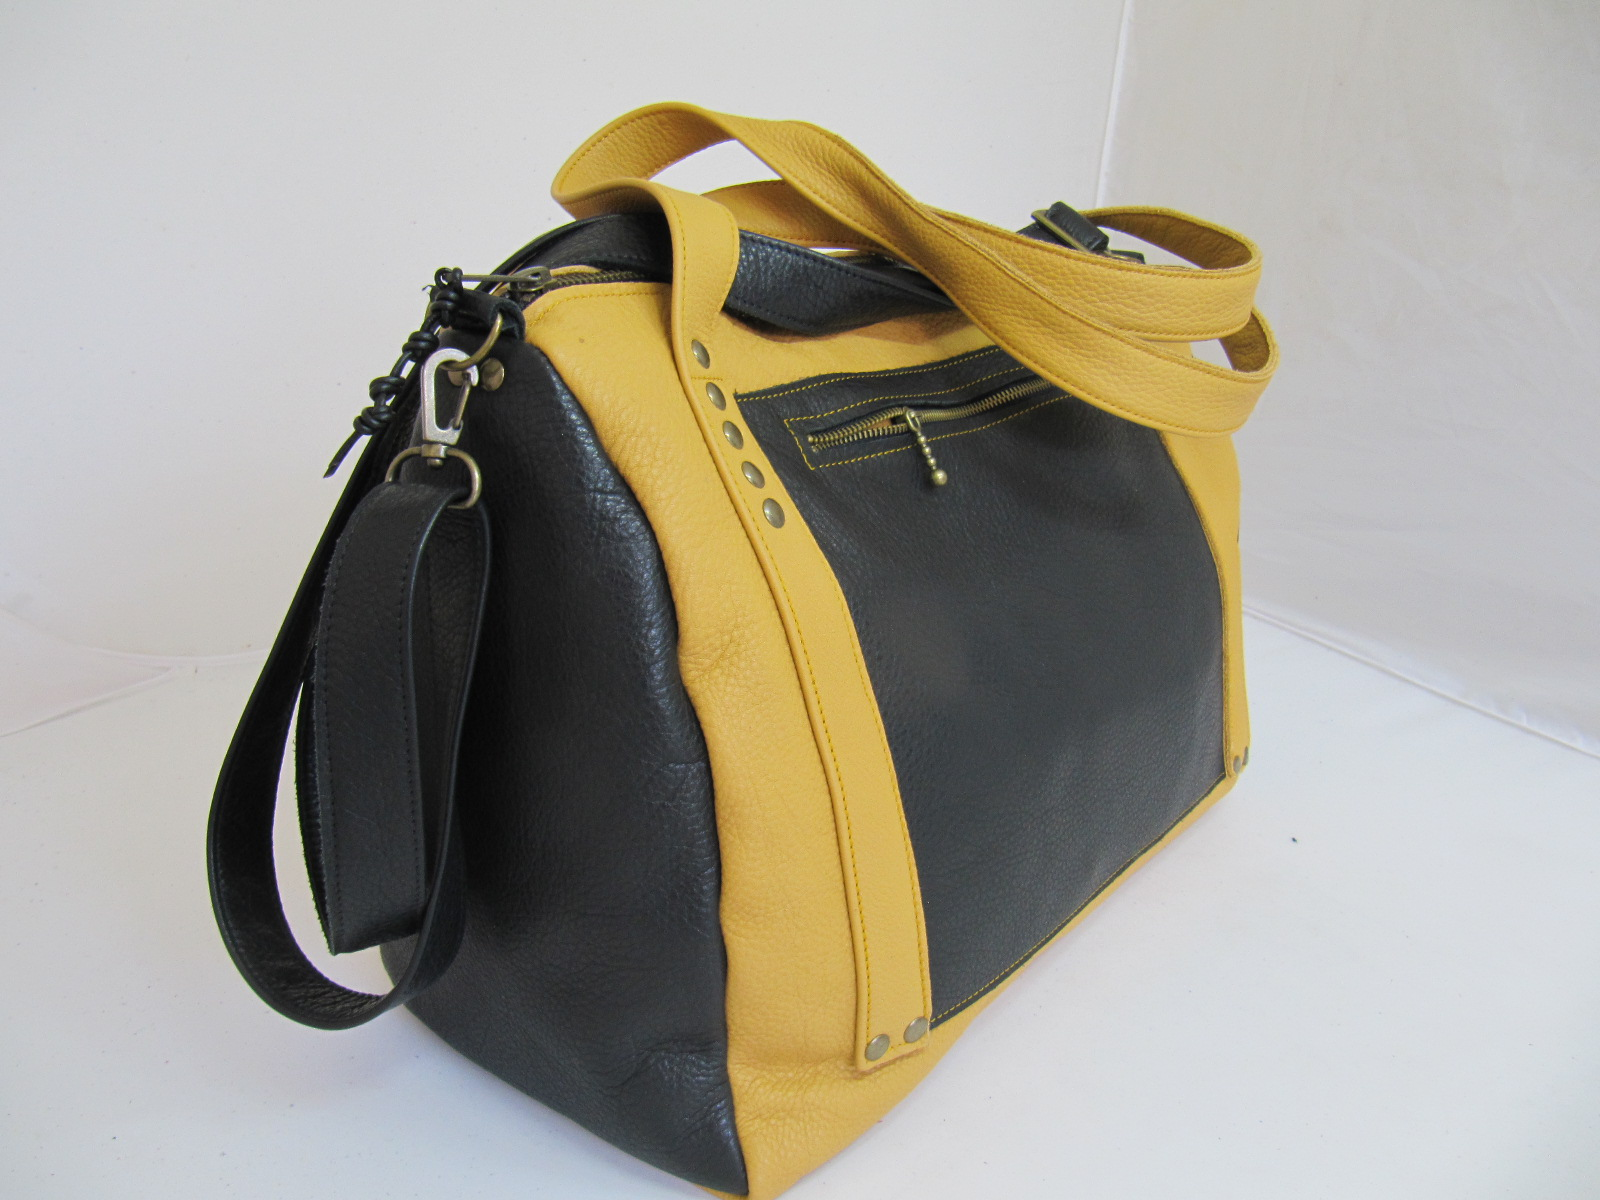 Mustard and black leather handbag